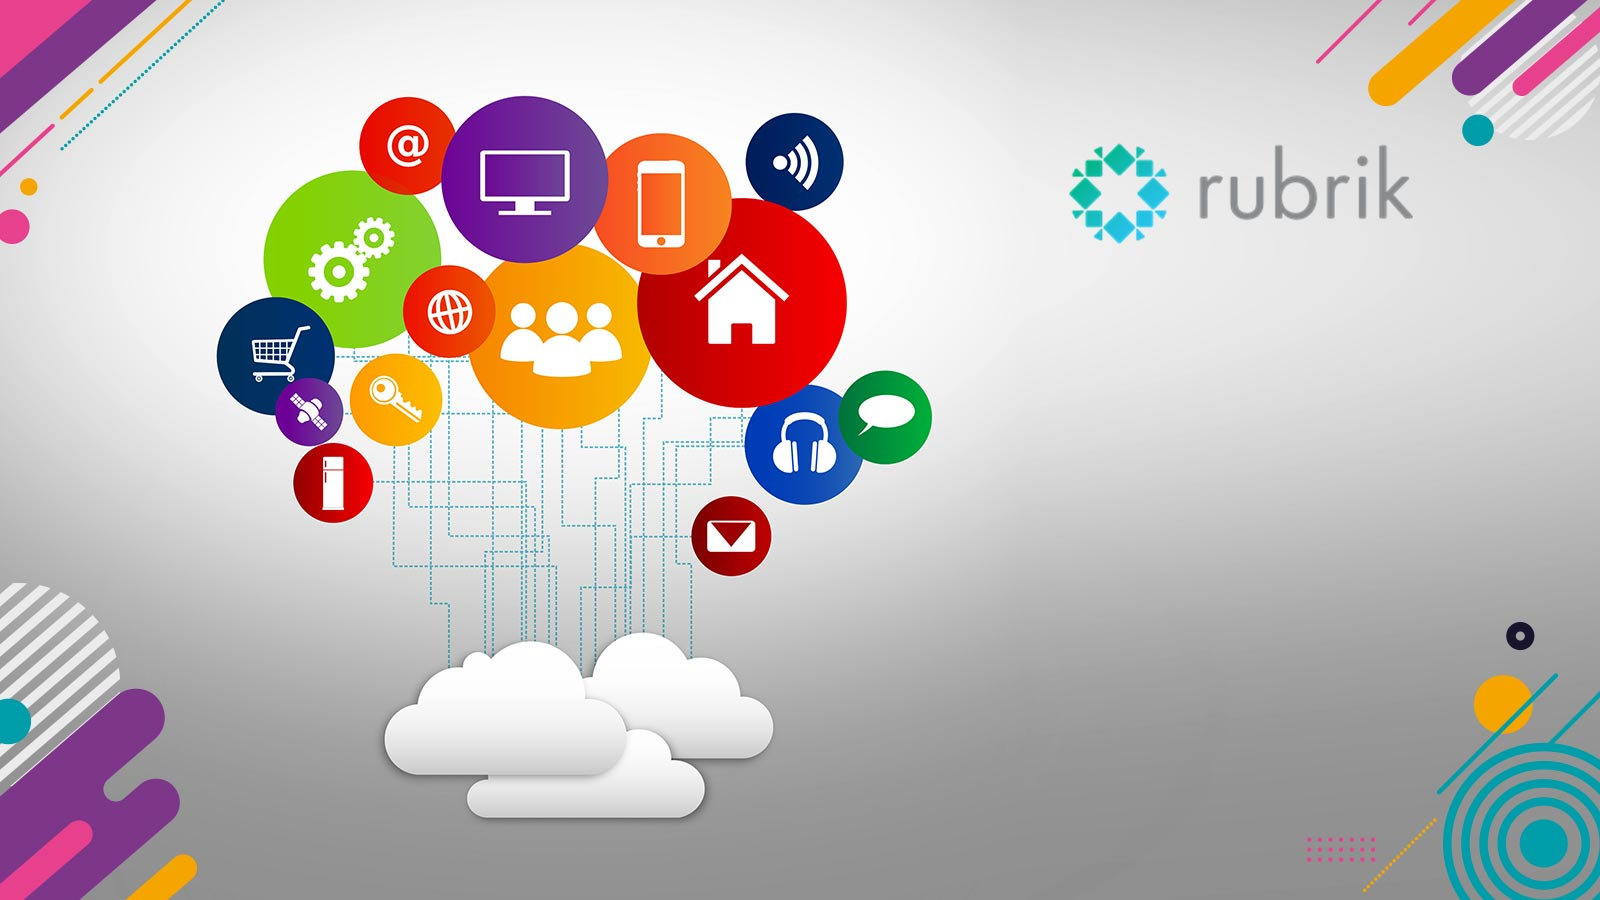 Rubriks Pioneering Cloud Data Management Platform Gets Major Update with Near Instant Recovery Times for Enterprise Workloads and Smart Cloud Cost Optimization.